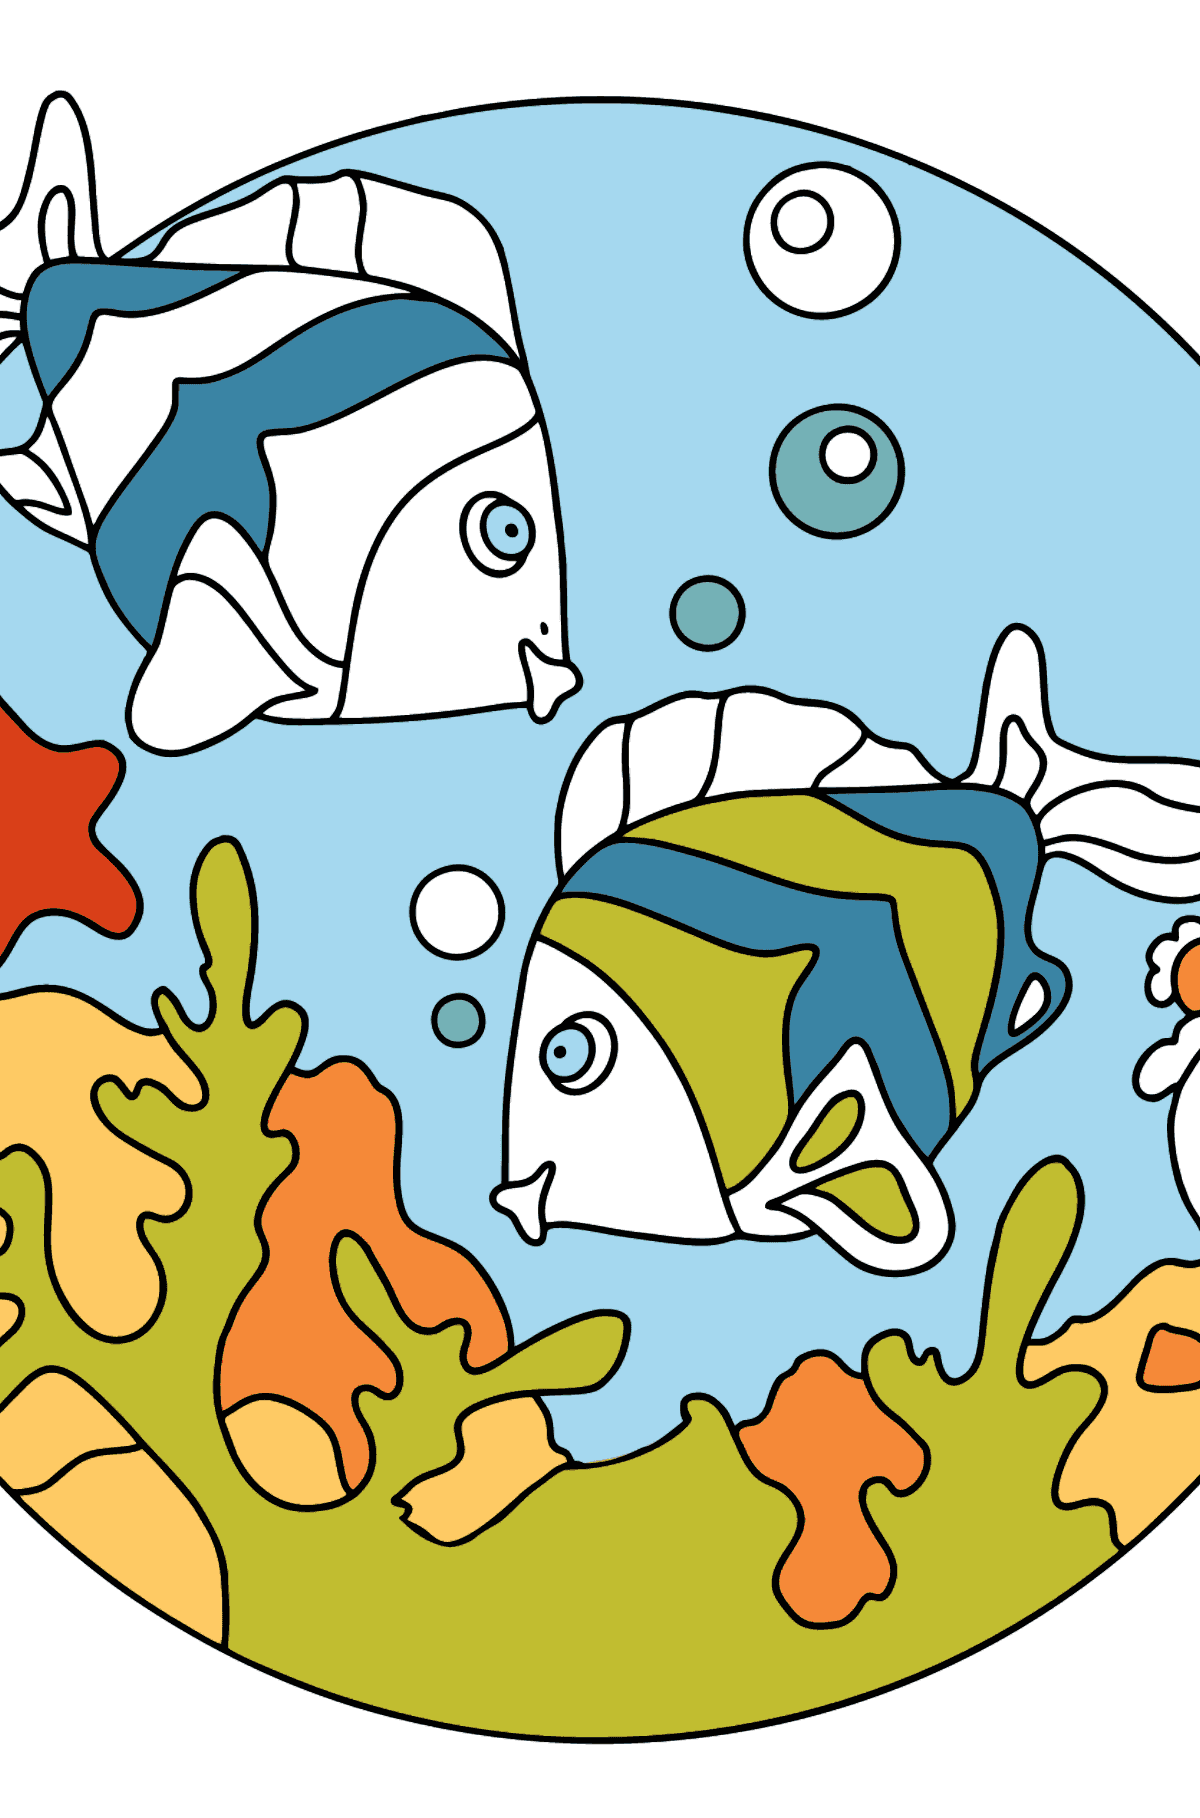 Coloring Page - Fish are Swimming Together - Coloring Pages for Kids